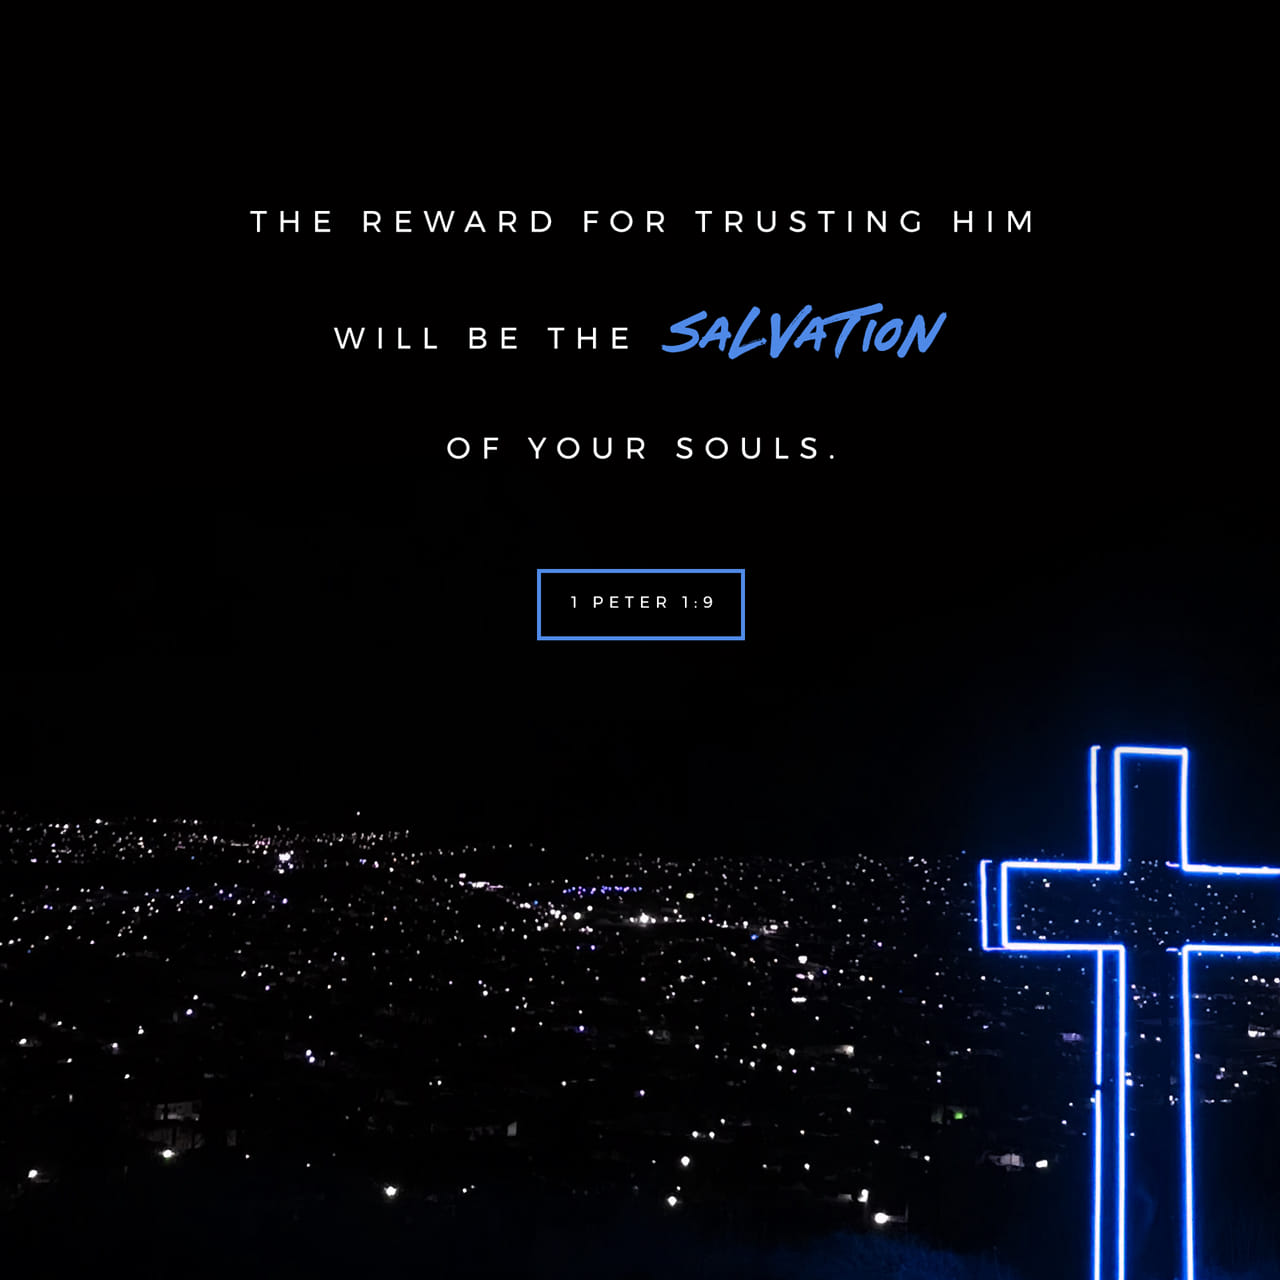 1 Peter 1:8-9 You love him even though you have never seen him. Though you do not see him now, you trust him; and you rejoice with a glorious, inexpressible joy. The reward for trusting him will be the salvation of   New Living Translation (NLT)